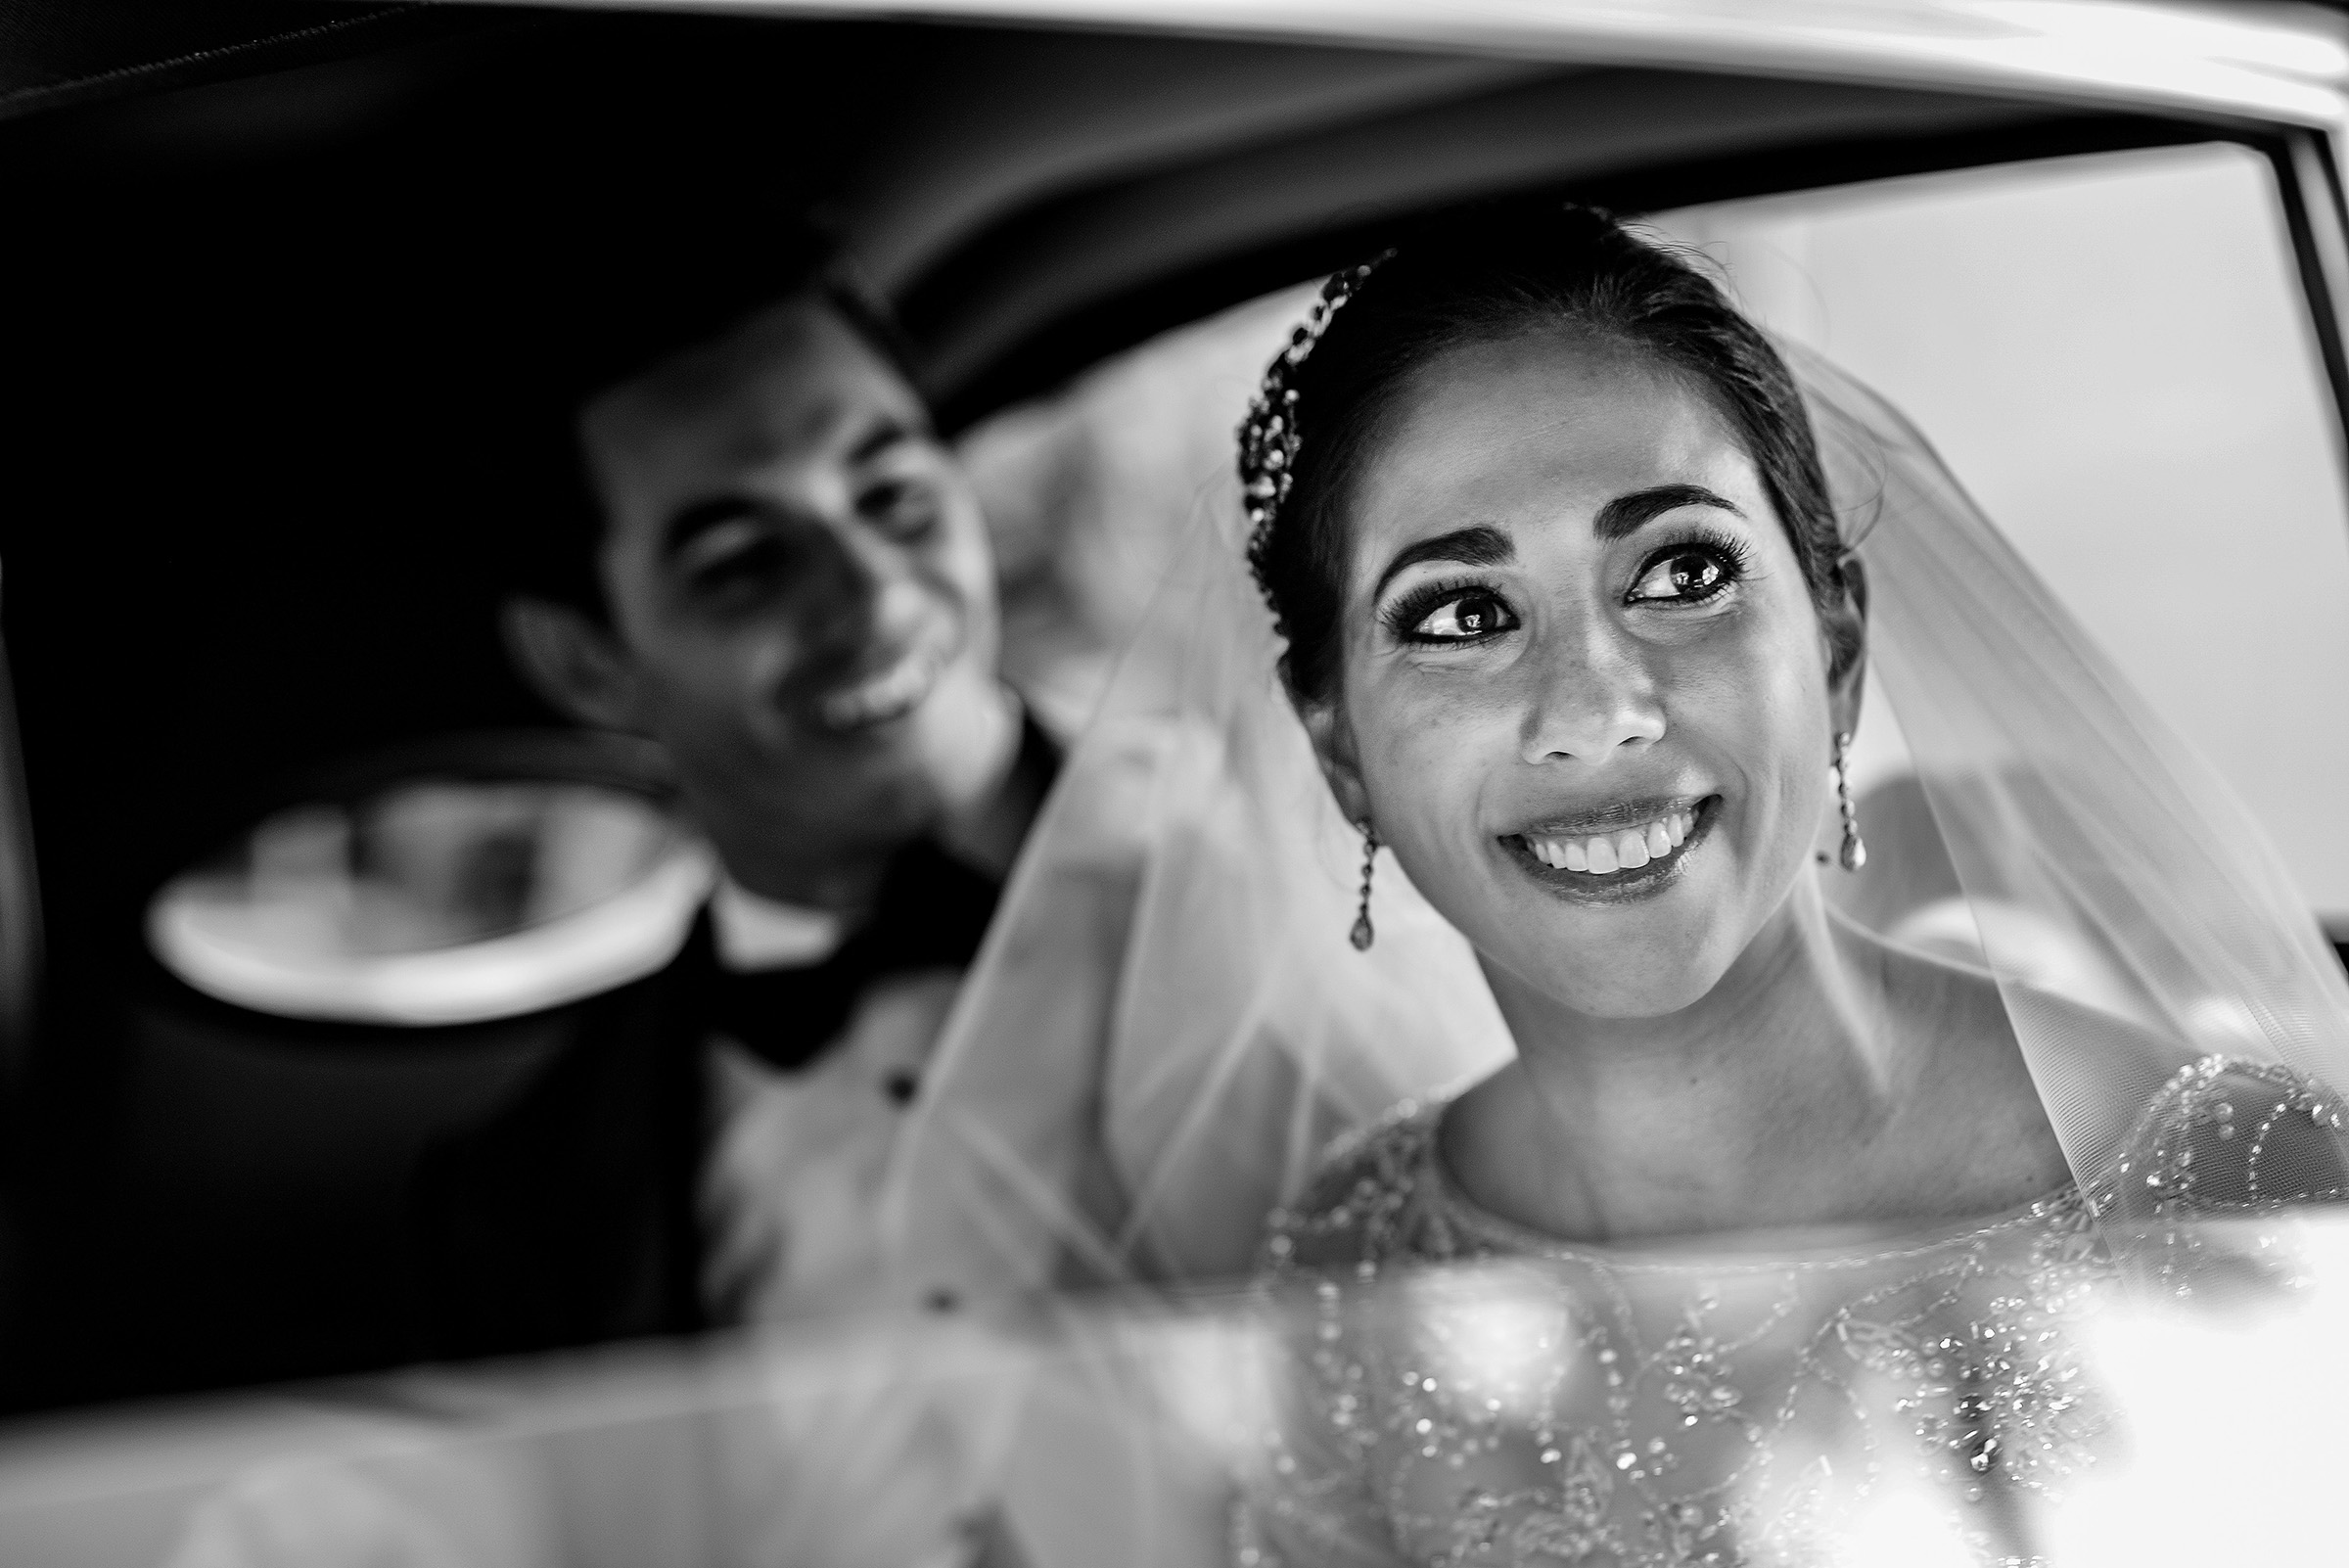 Bride and groom through limo window - photo by Gloria Ruth Photography